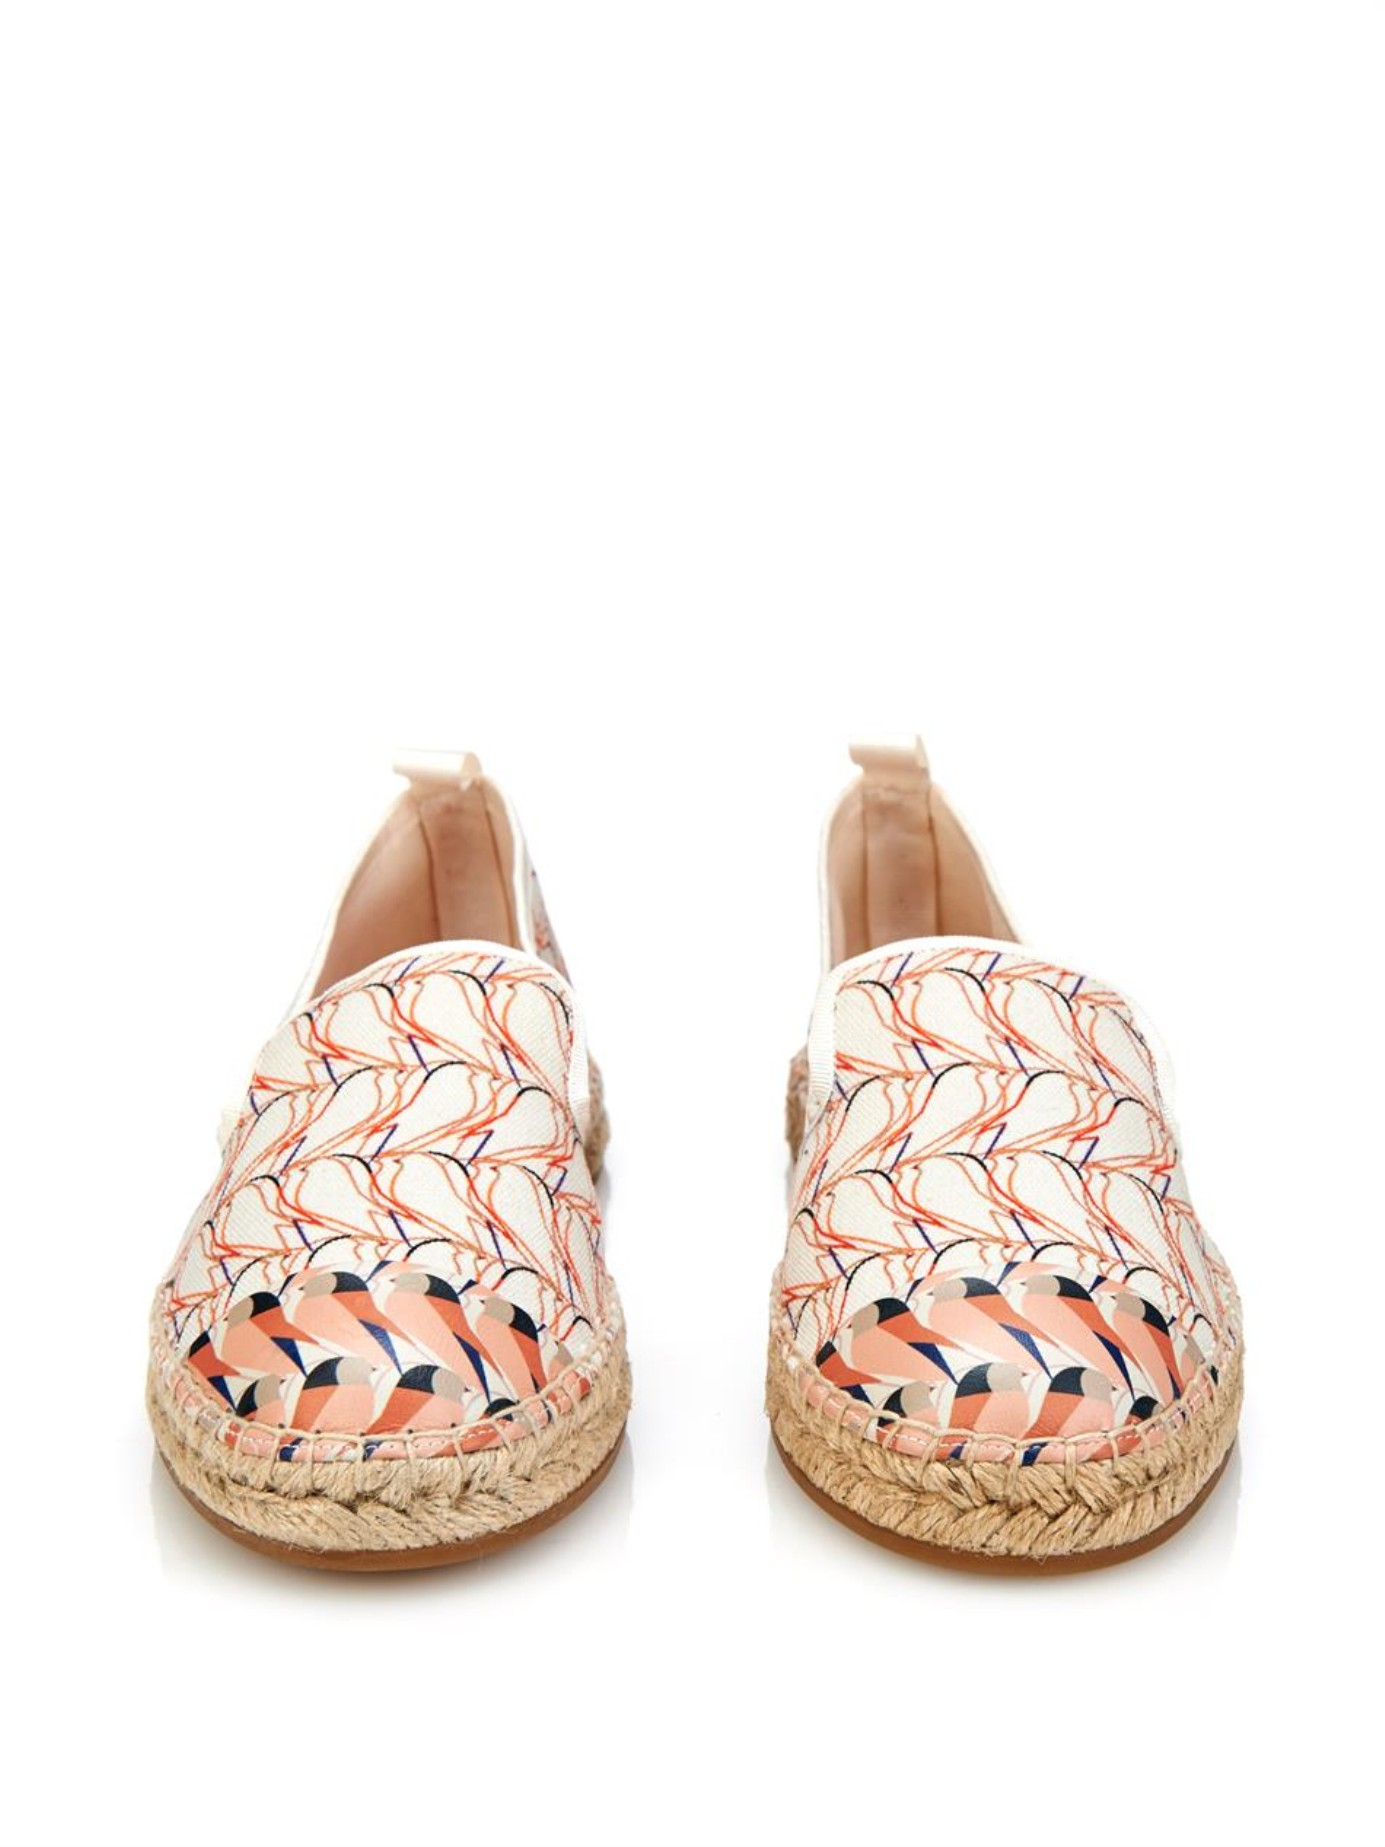 Fendi Printed Leather Espadrilles outlet best store to get free shipping original find great sale online free shipping 100% authentic 5LSxPWW